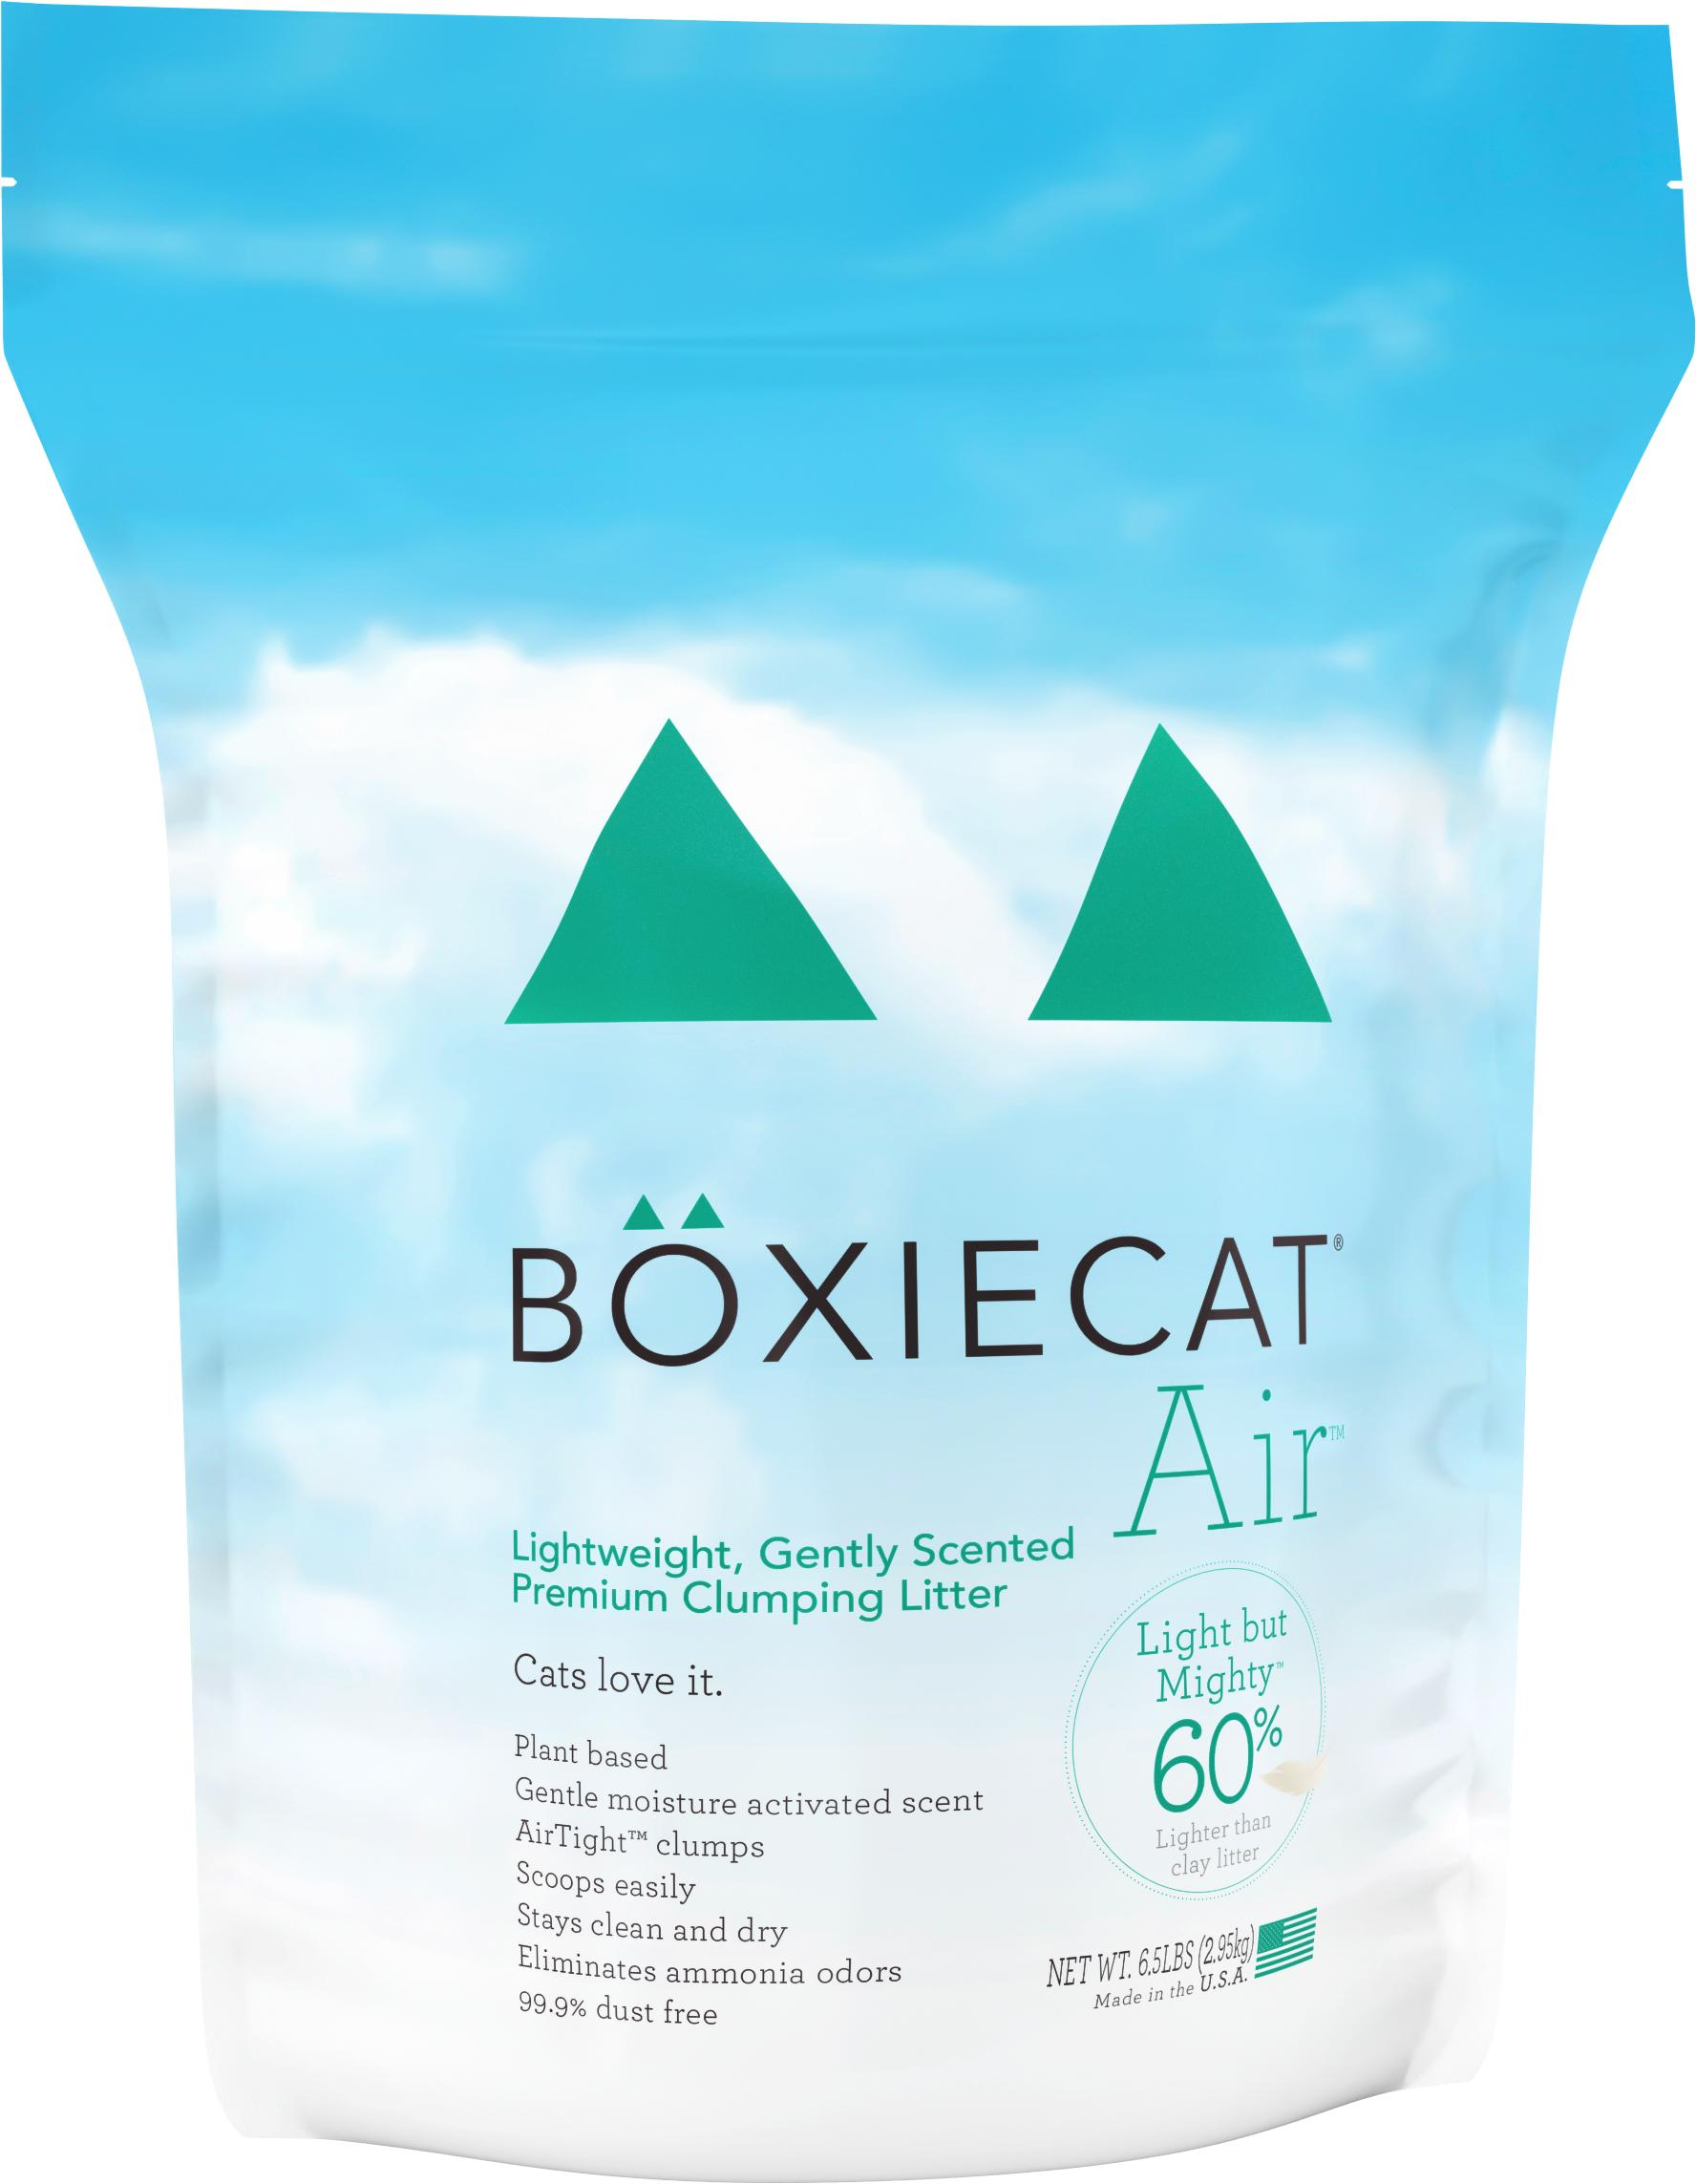 Boxiecat Air Lightweight, Gently Scented, Premium Clumping Cat Litter Image